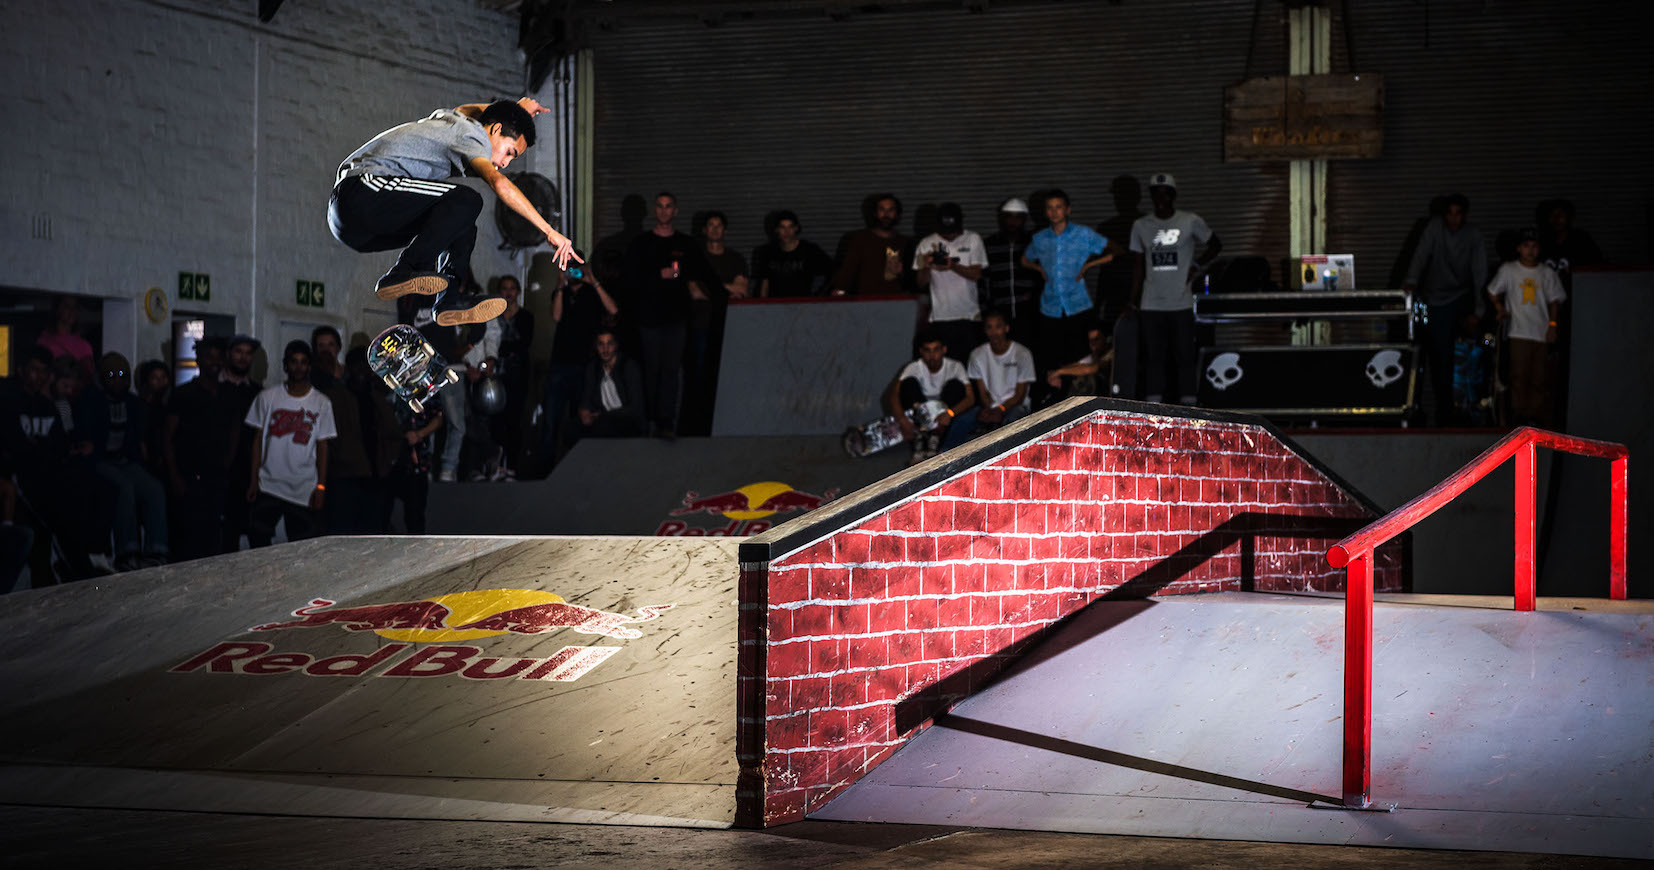 Allan Adams taking 1st at the Winter Jam skateboarding contest